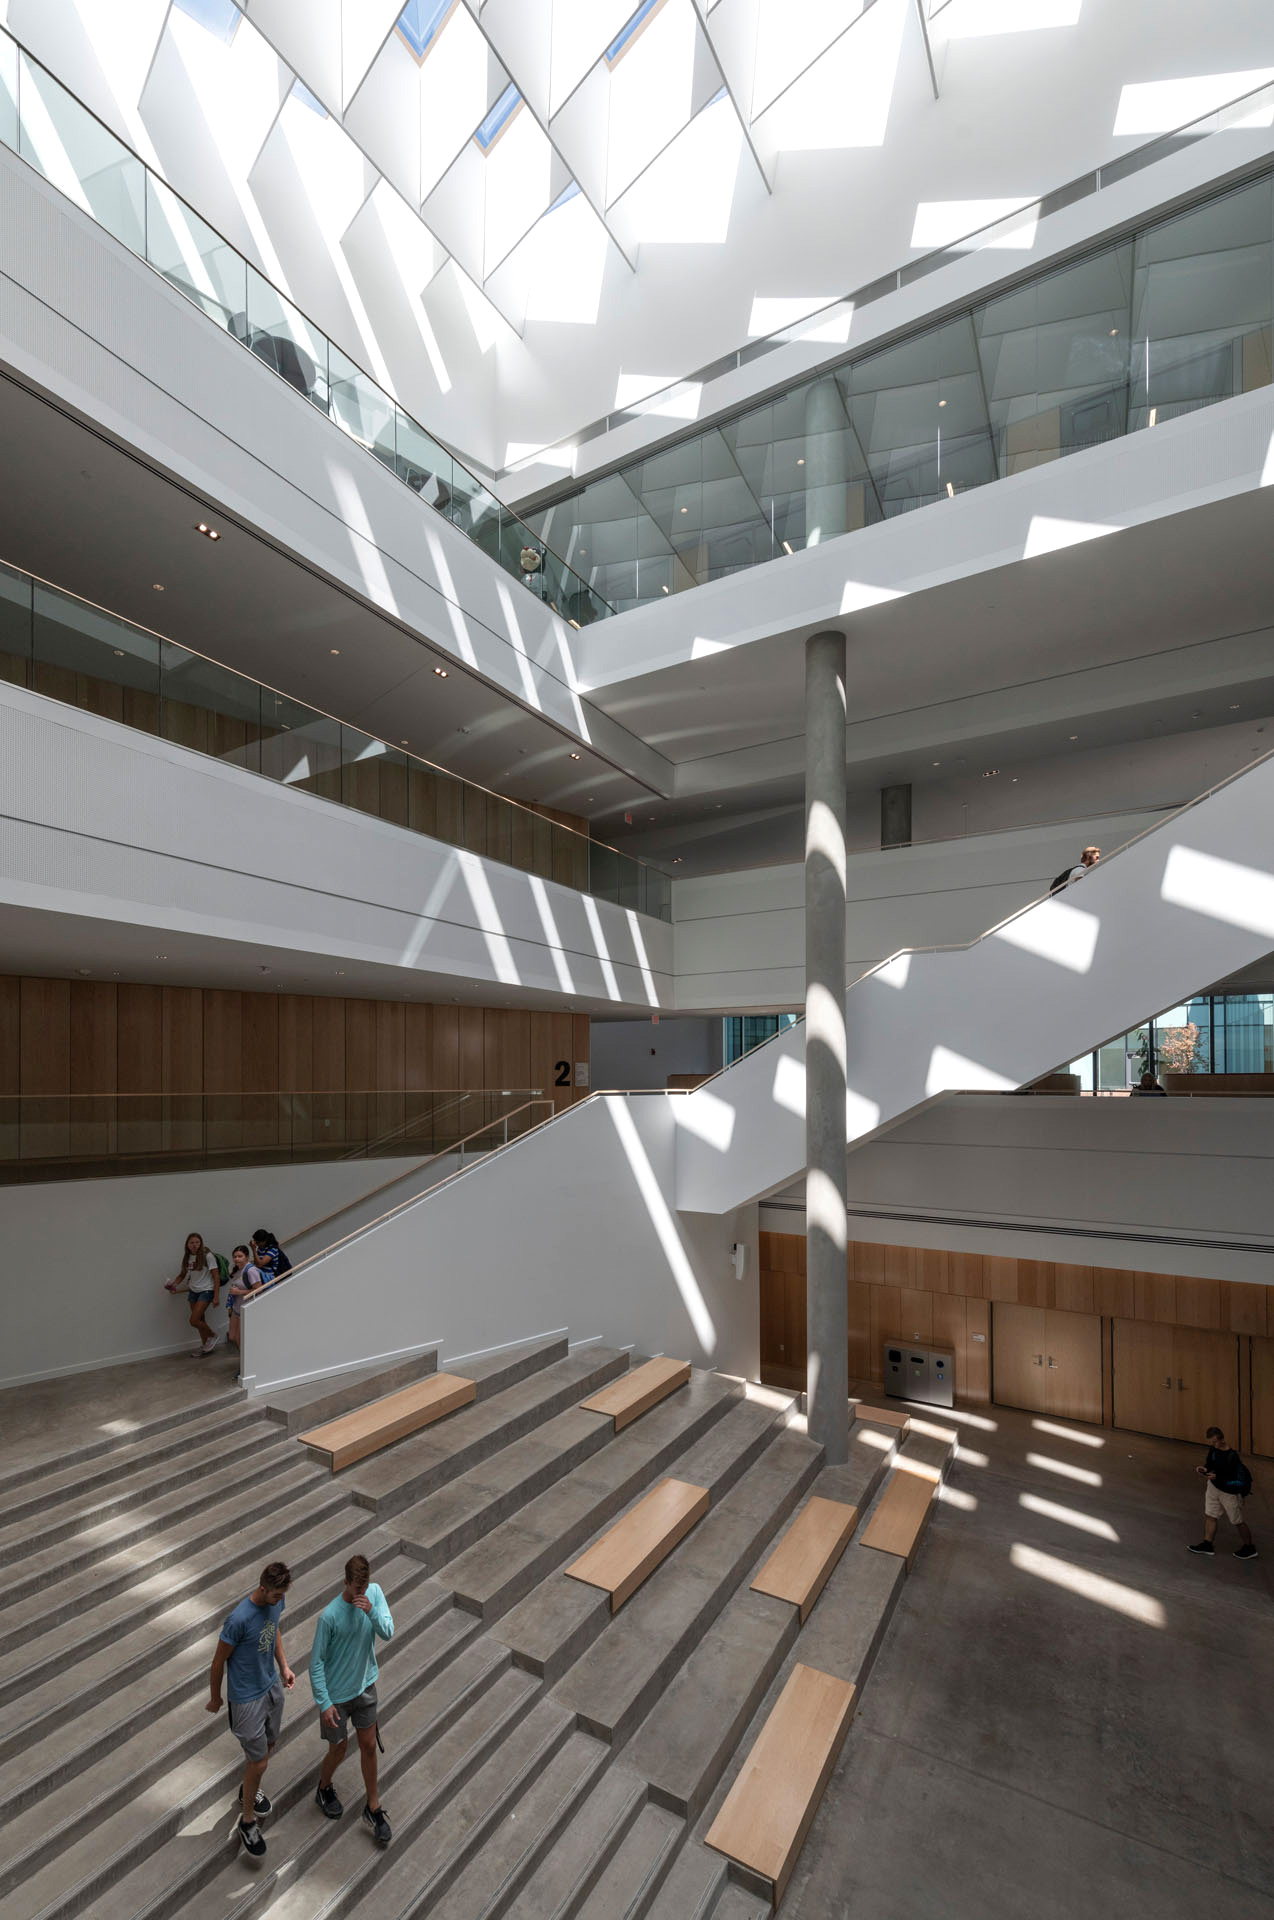 Geometric shadows casting on the atrium walls create an immersive environment | University of Cincinnati's Lindner College of Business | Henning Larsen | STIRworld